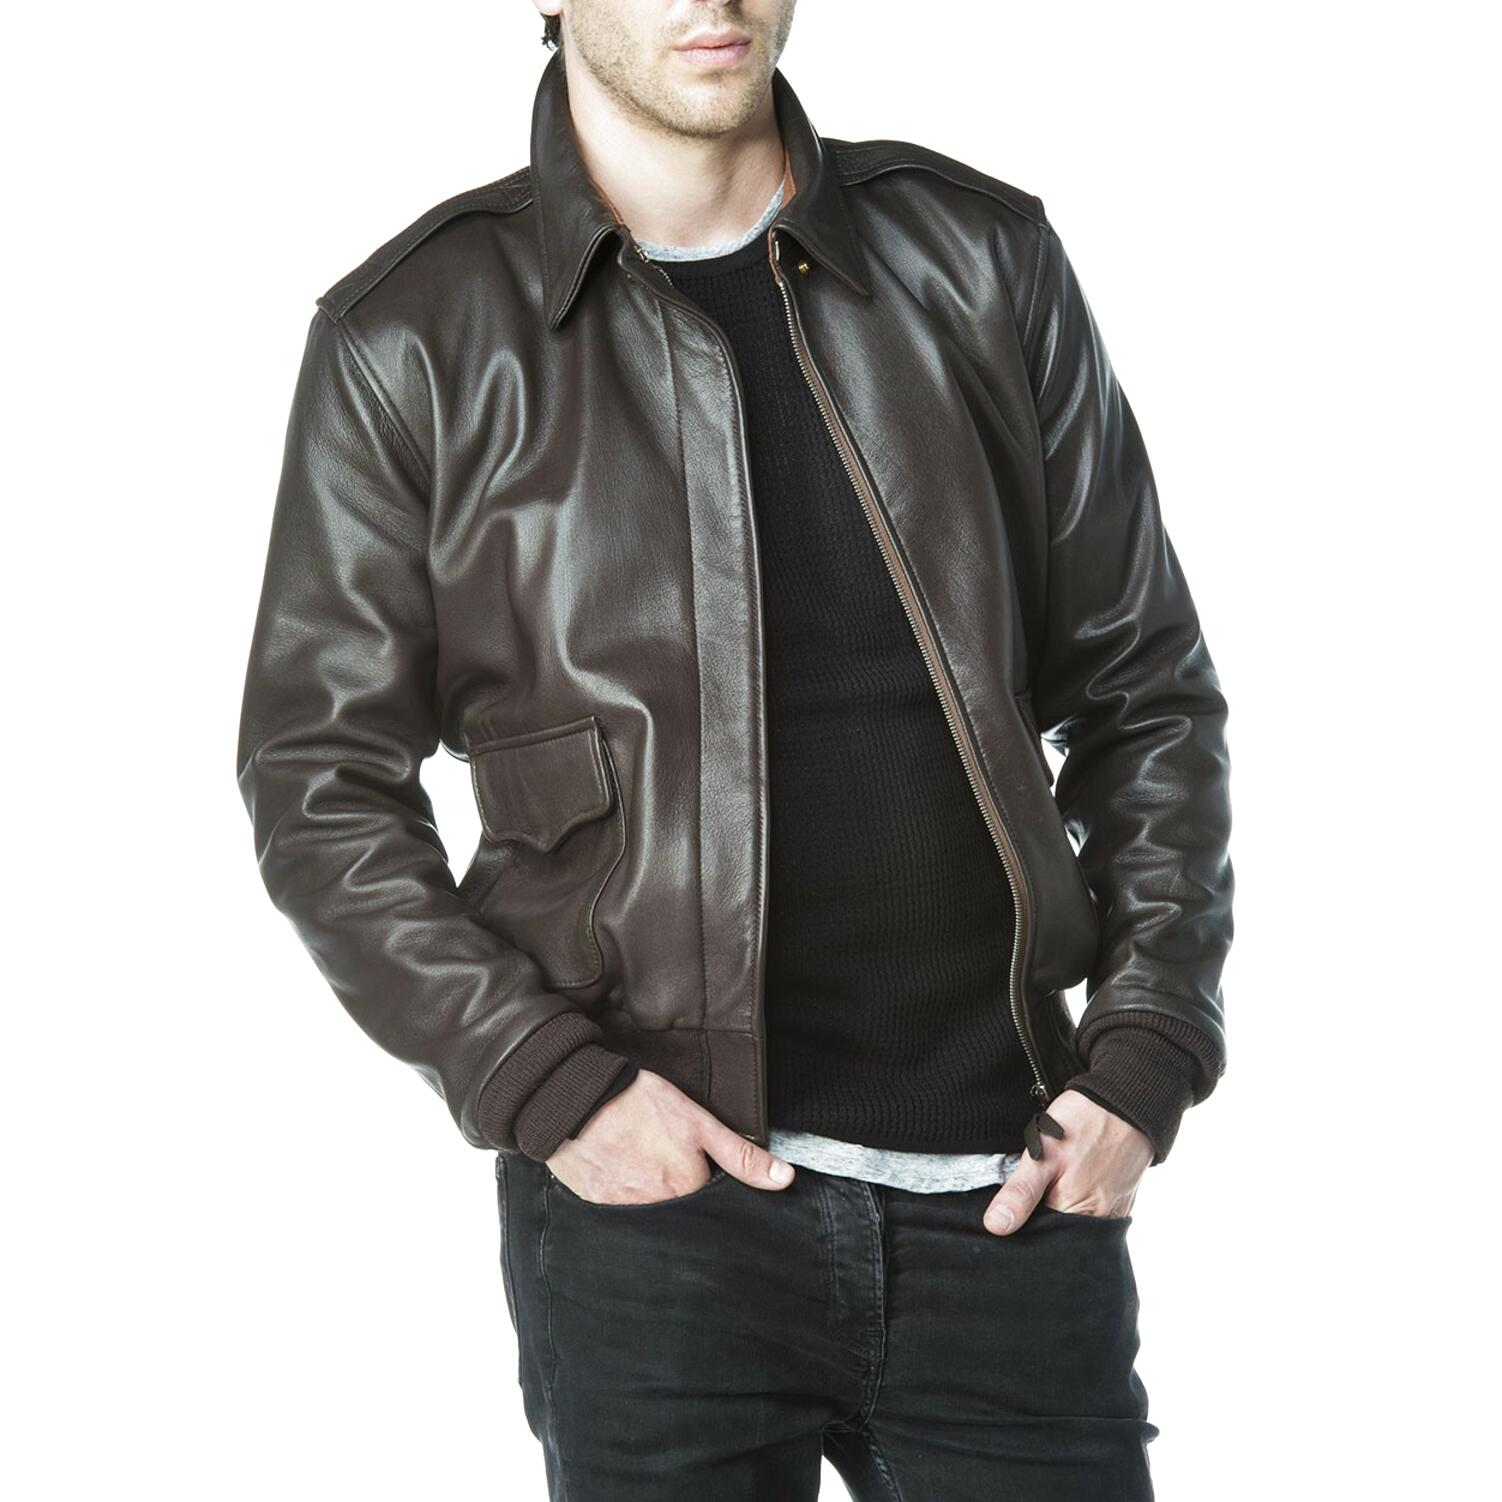 a2 leather jacket for sale